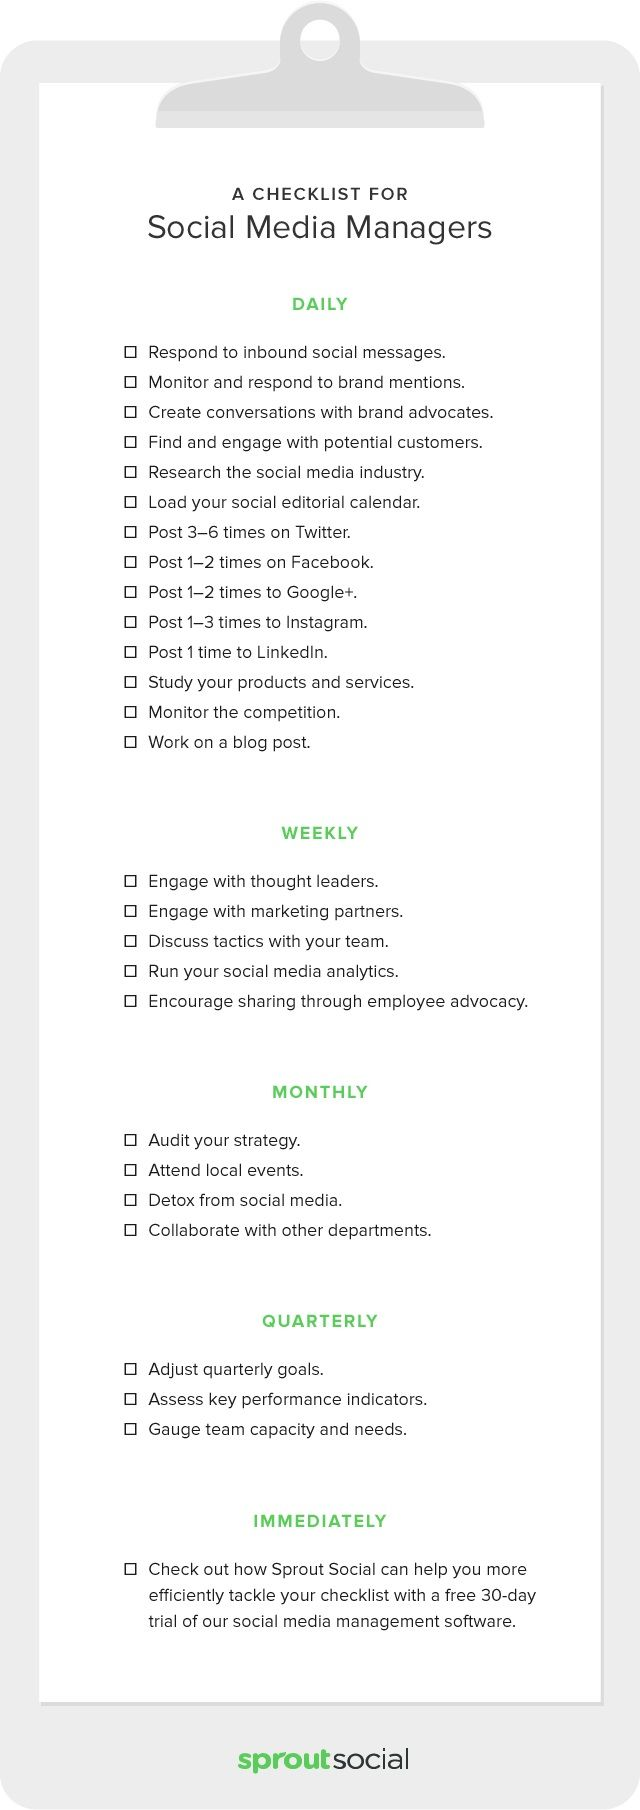 To-Do List for Social Media Managers [INFOGRAPHIC]   Social Media Today